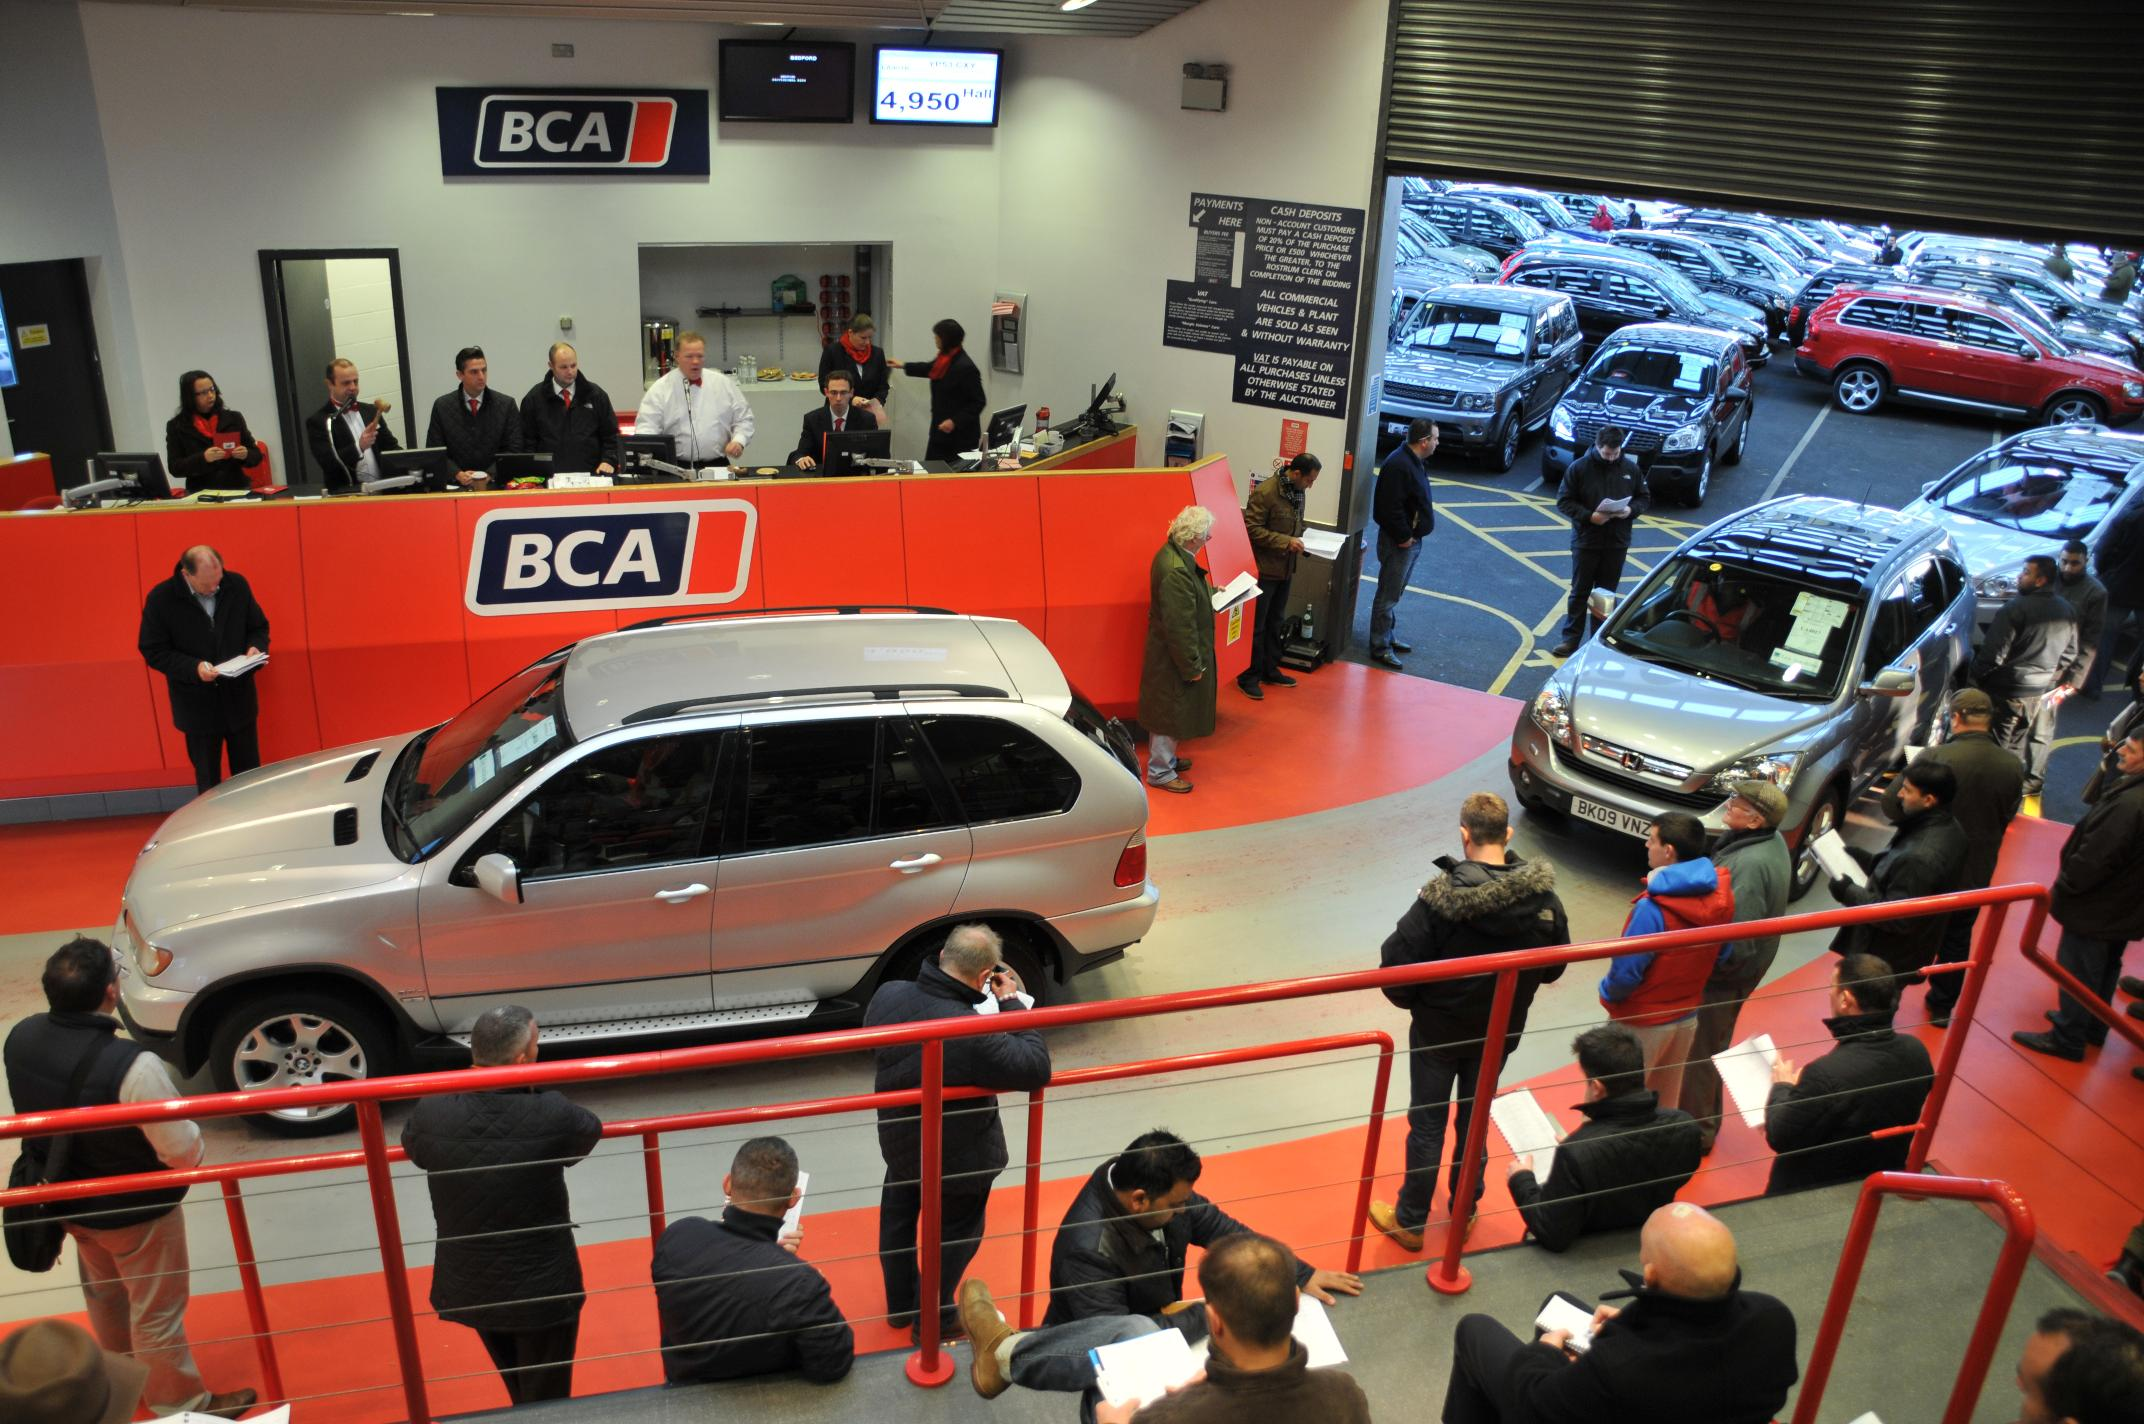 Ex-fleet car values reach record levels at auction - Motor